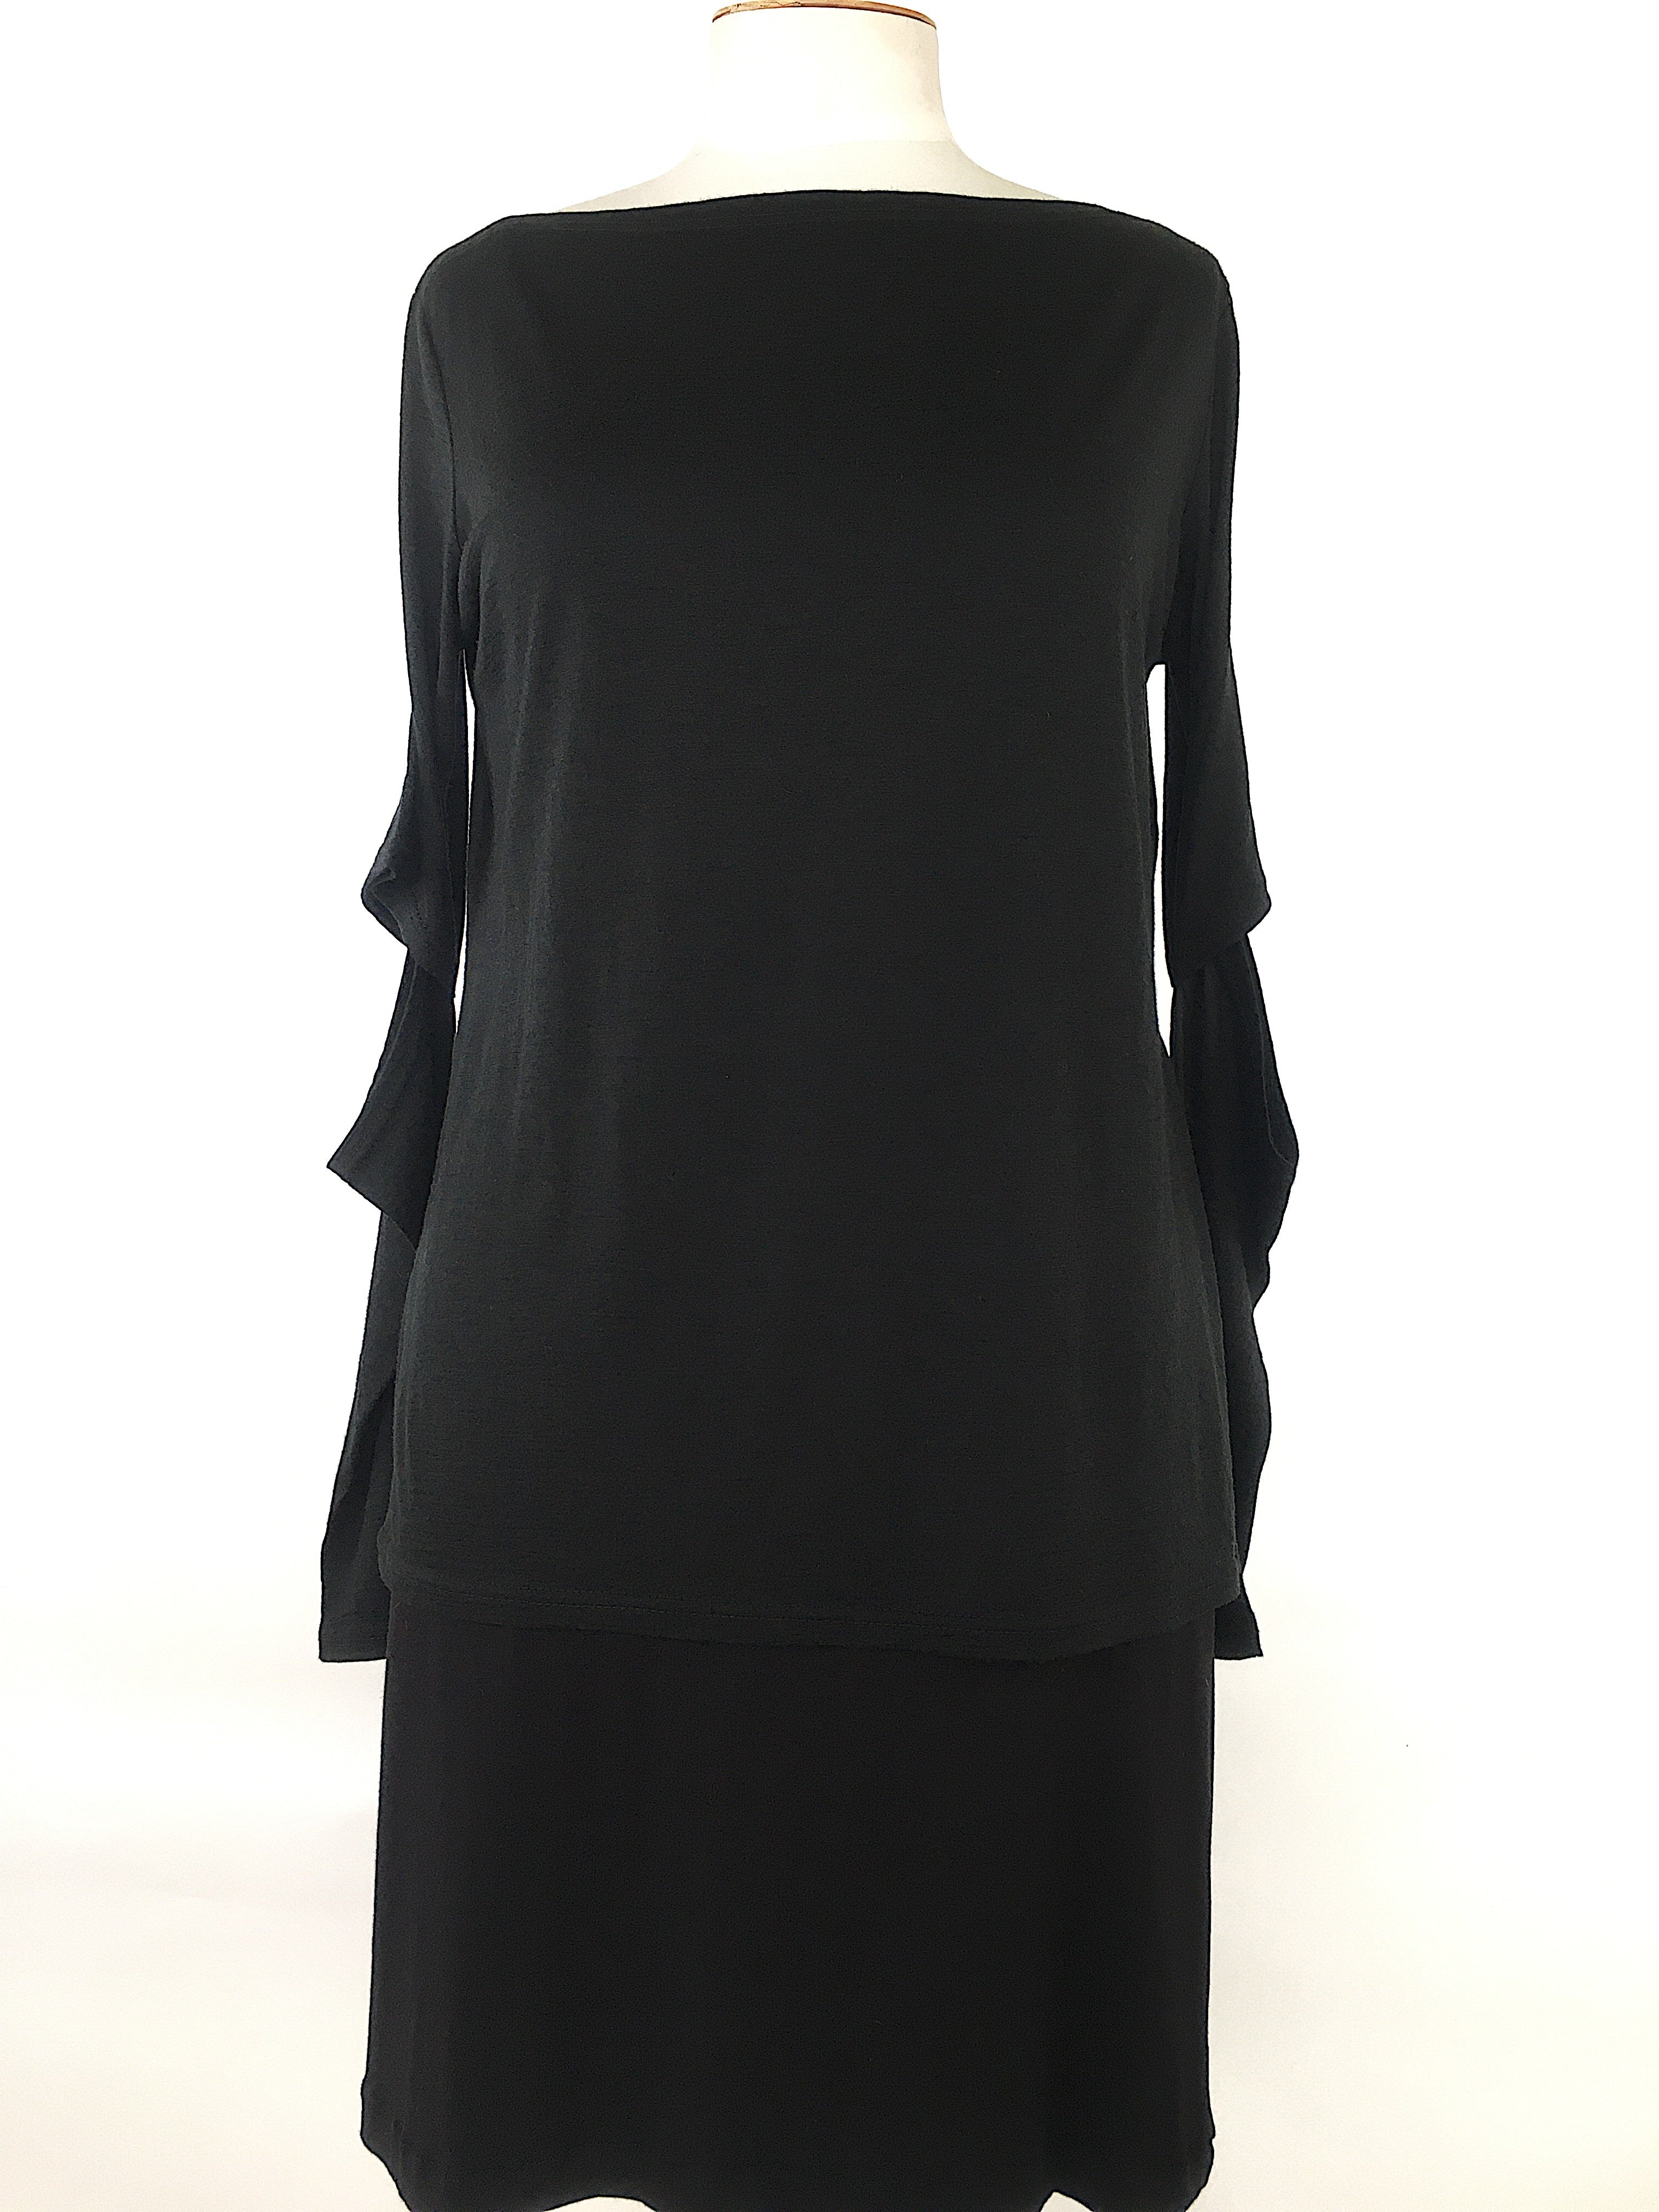 Sabatini Cutout Merino Top  - Black